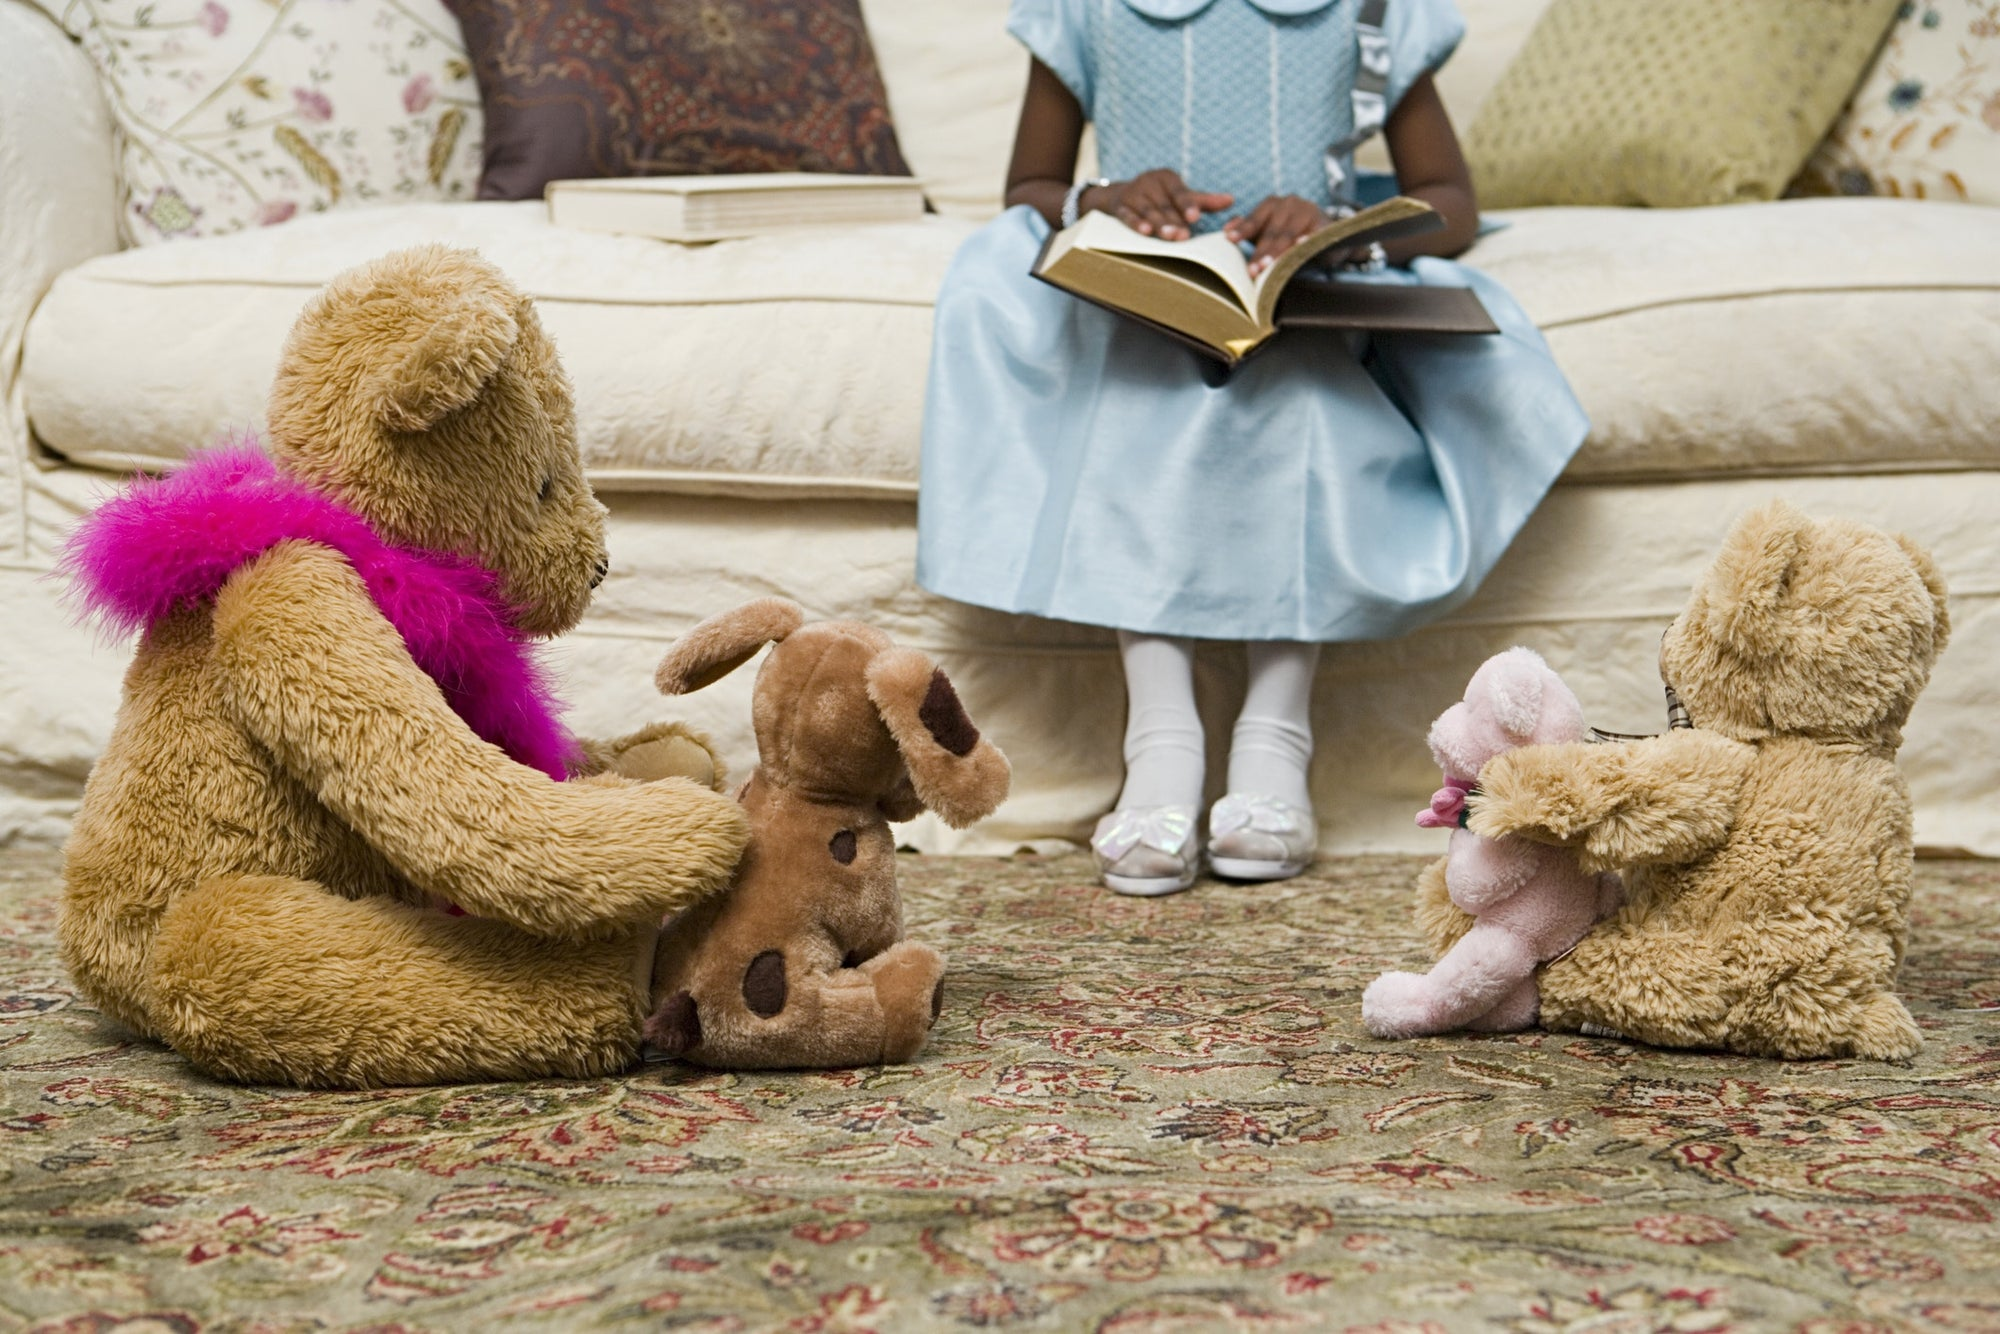 young girl sitting on sofa with book and teddy bear on floor